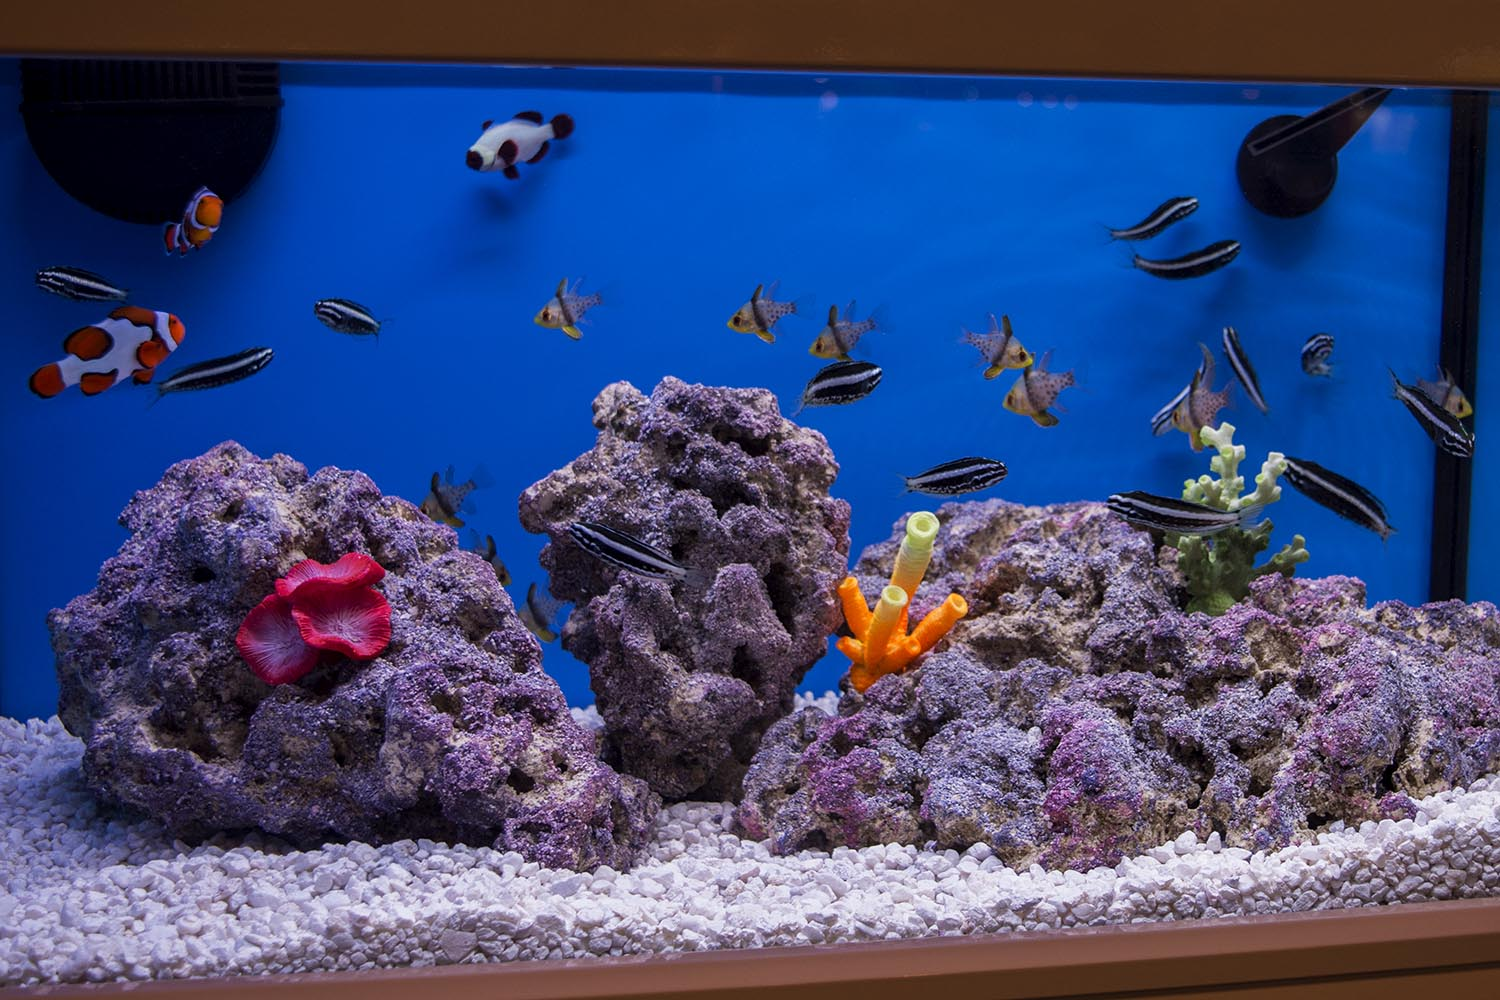 A display aquarium featuring captive bred fish from ORA including Kamohara Blennies, Pajama Cardinals, and others.